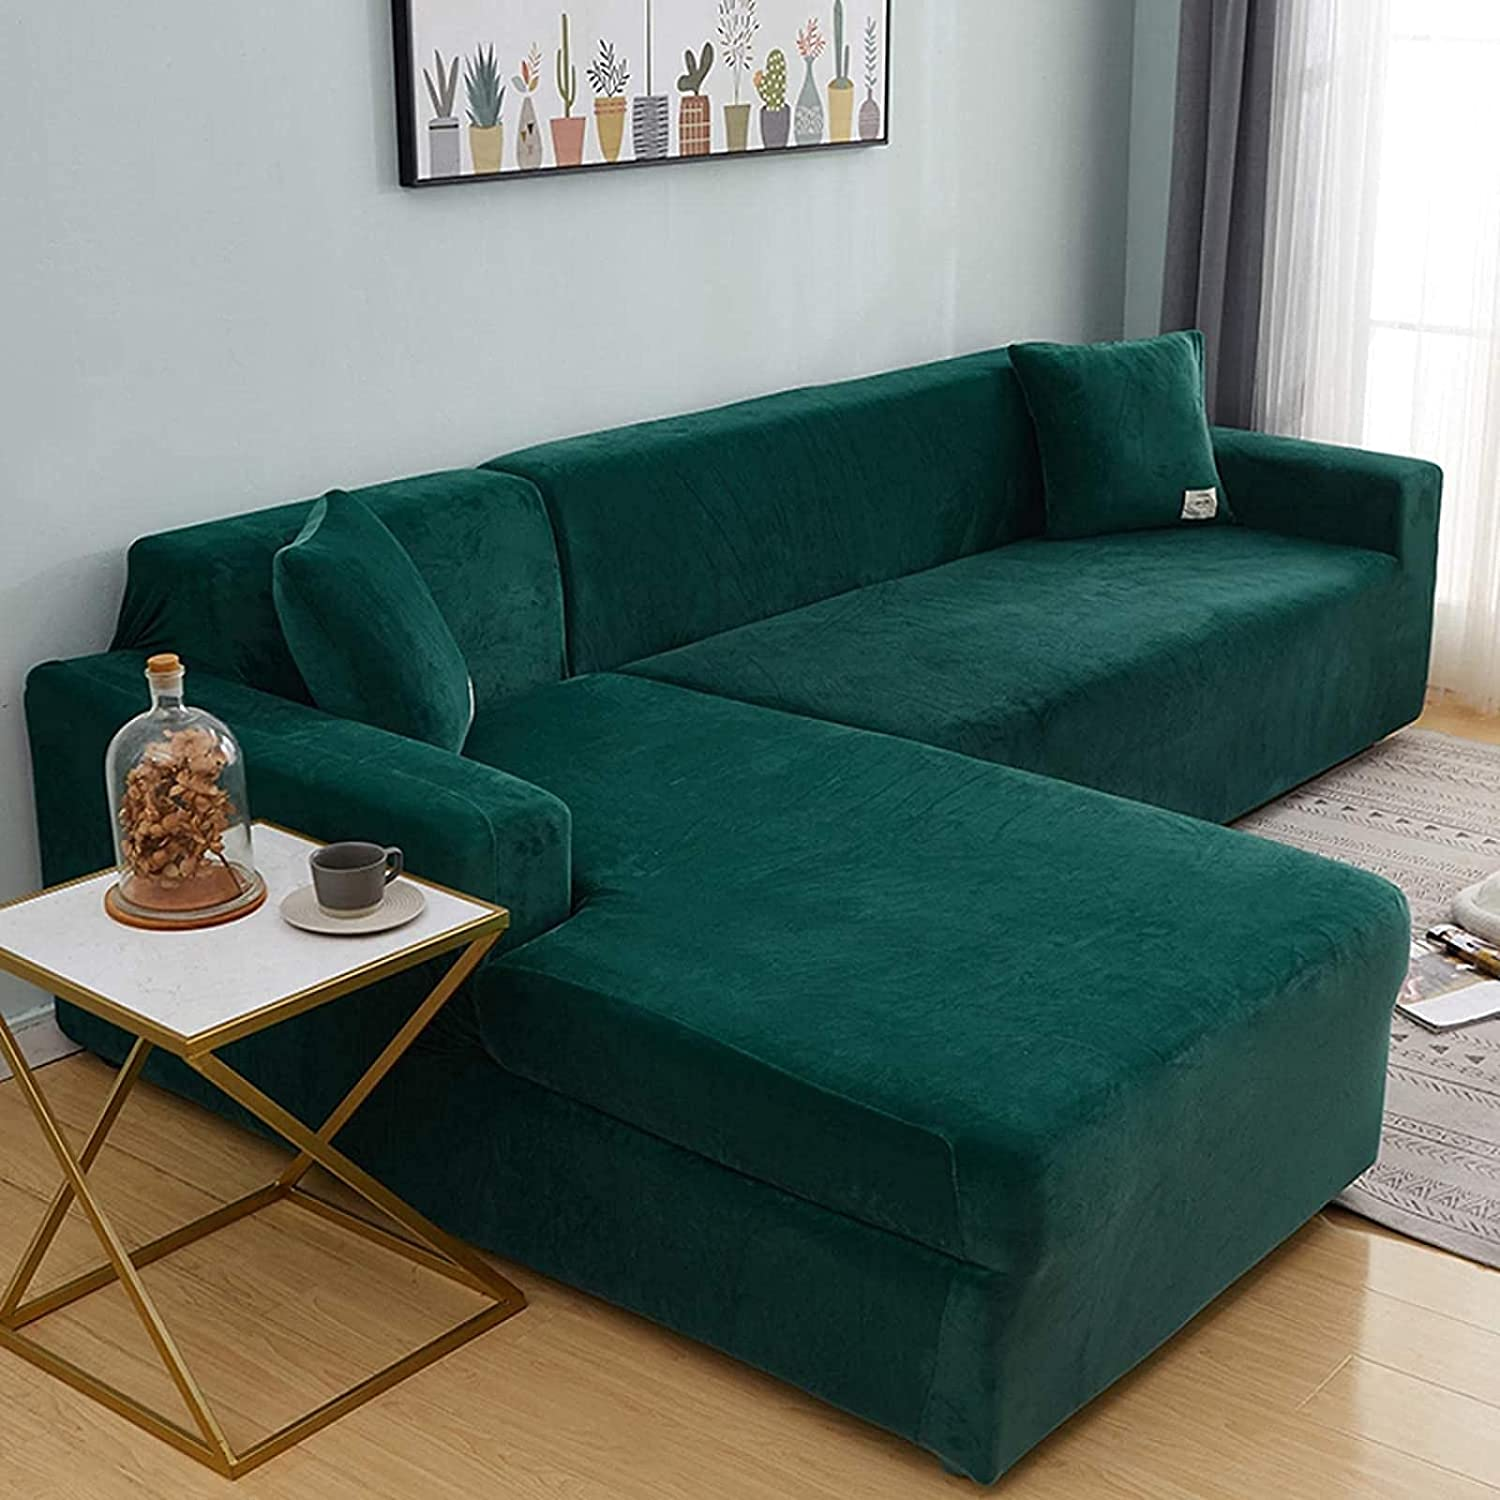 JYHS 2 Piece Stretch Sofa Covers Max 72% OFF Credence Sectional Easy-Going